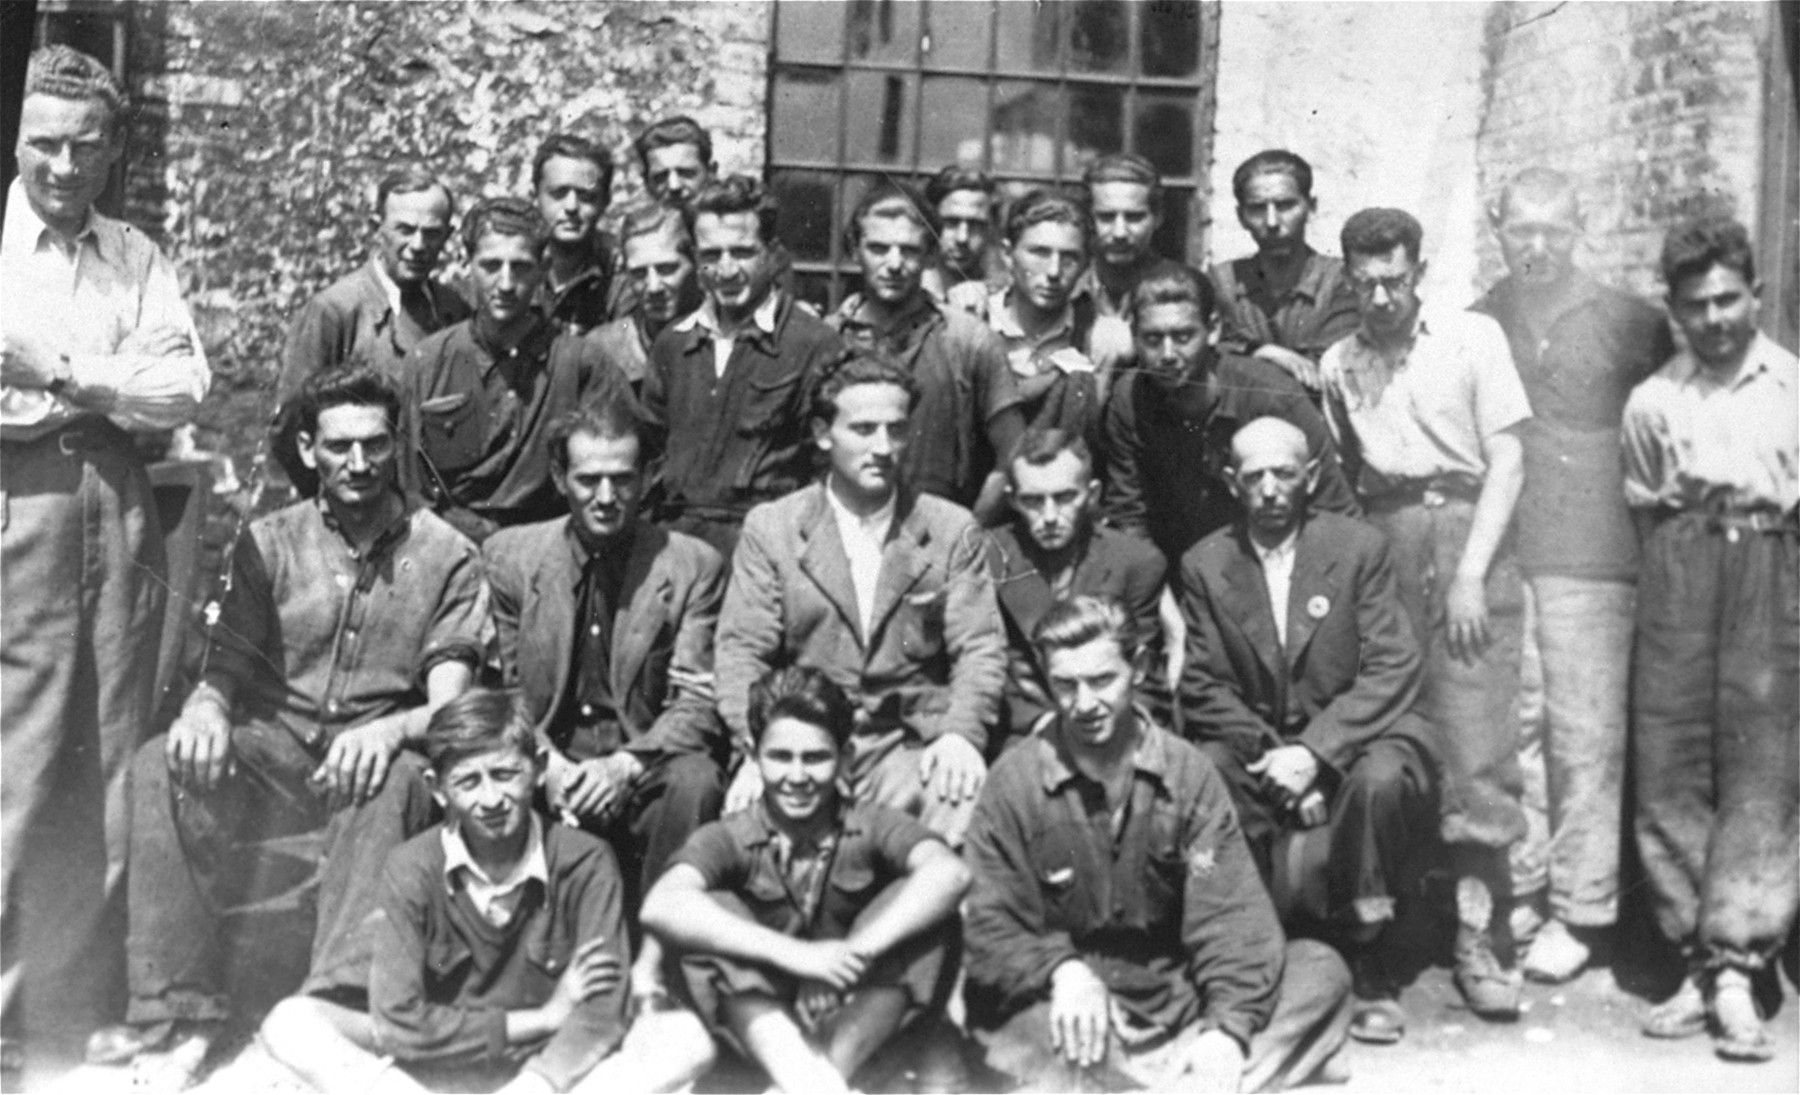 Group portrait of Jewish forced laborers at the Turnatoria, the machine shop established by Siegfried Jagendorf in the Mogilev-Podolskiy foundry.  Pictured in the center is Max Schmidt, an engineer from Cernauti who headed the lathe and power plant department of the Turnatoria.  Also pictured is Max Auslander (standing in the back row, seventh from the left). Friedrich Haas is pictured sitting in the front row center.  Seated in the second row on the far right is the manager, Engineer Josef Schmidt.